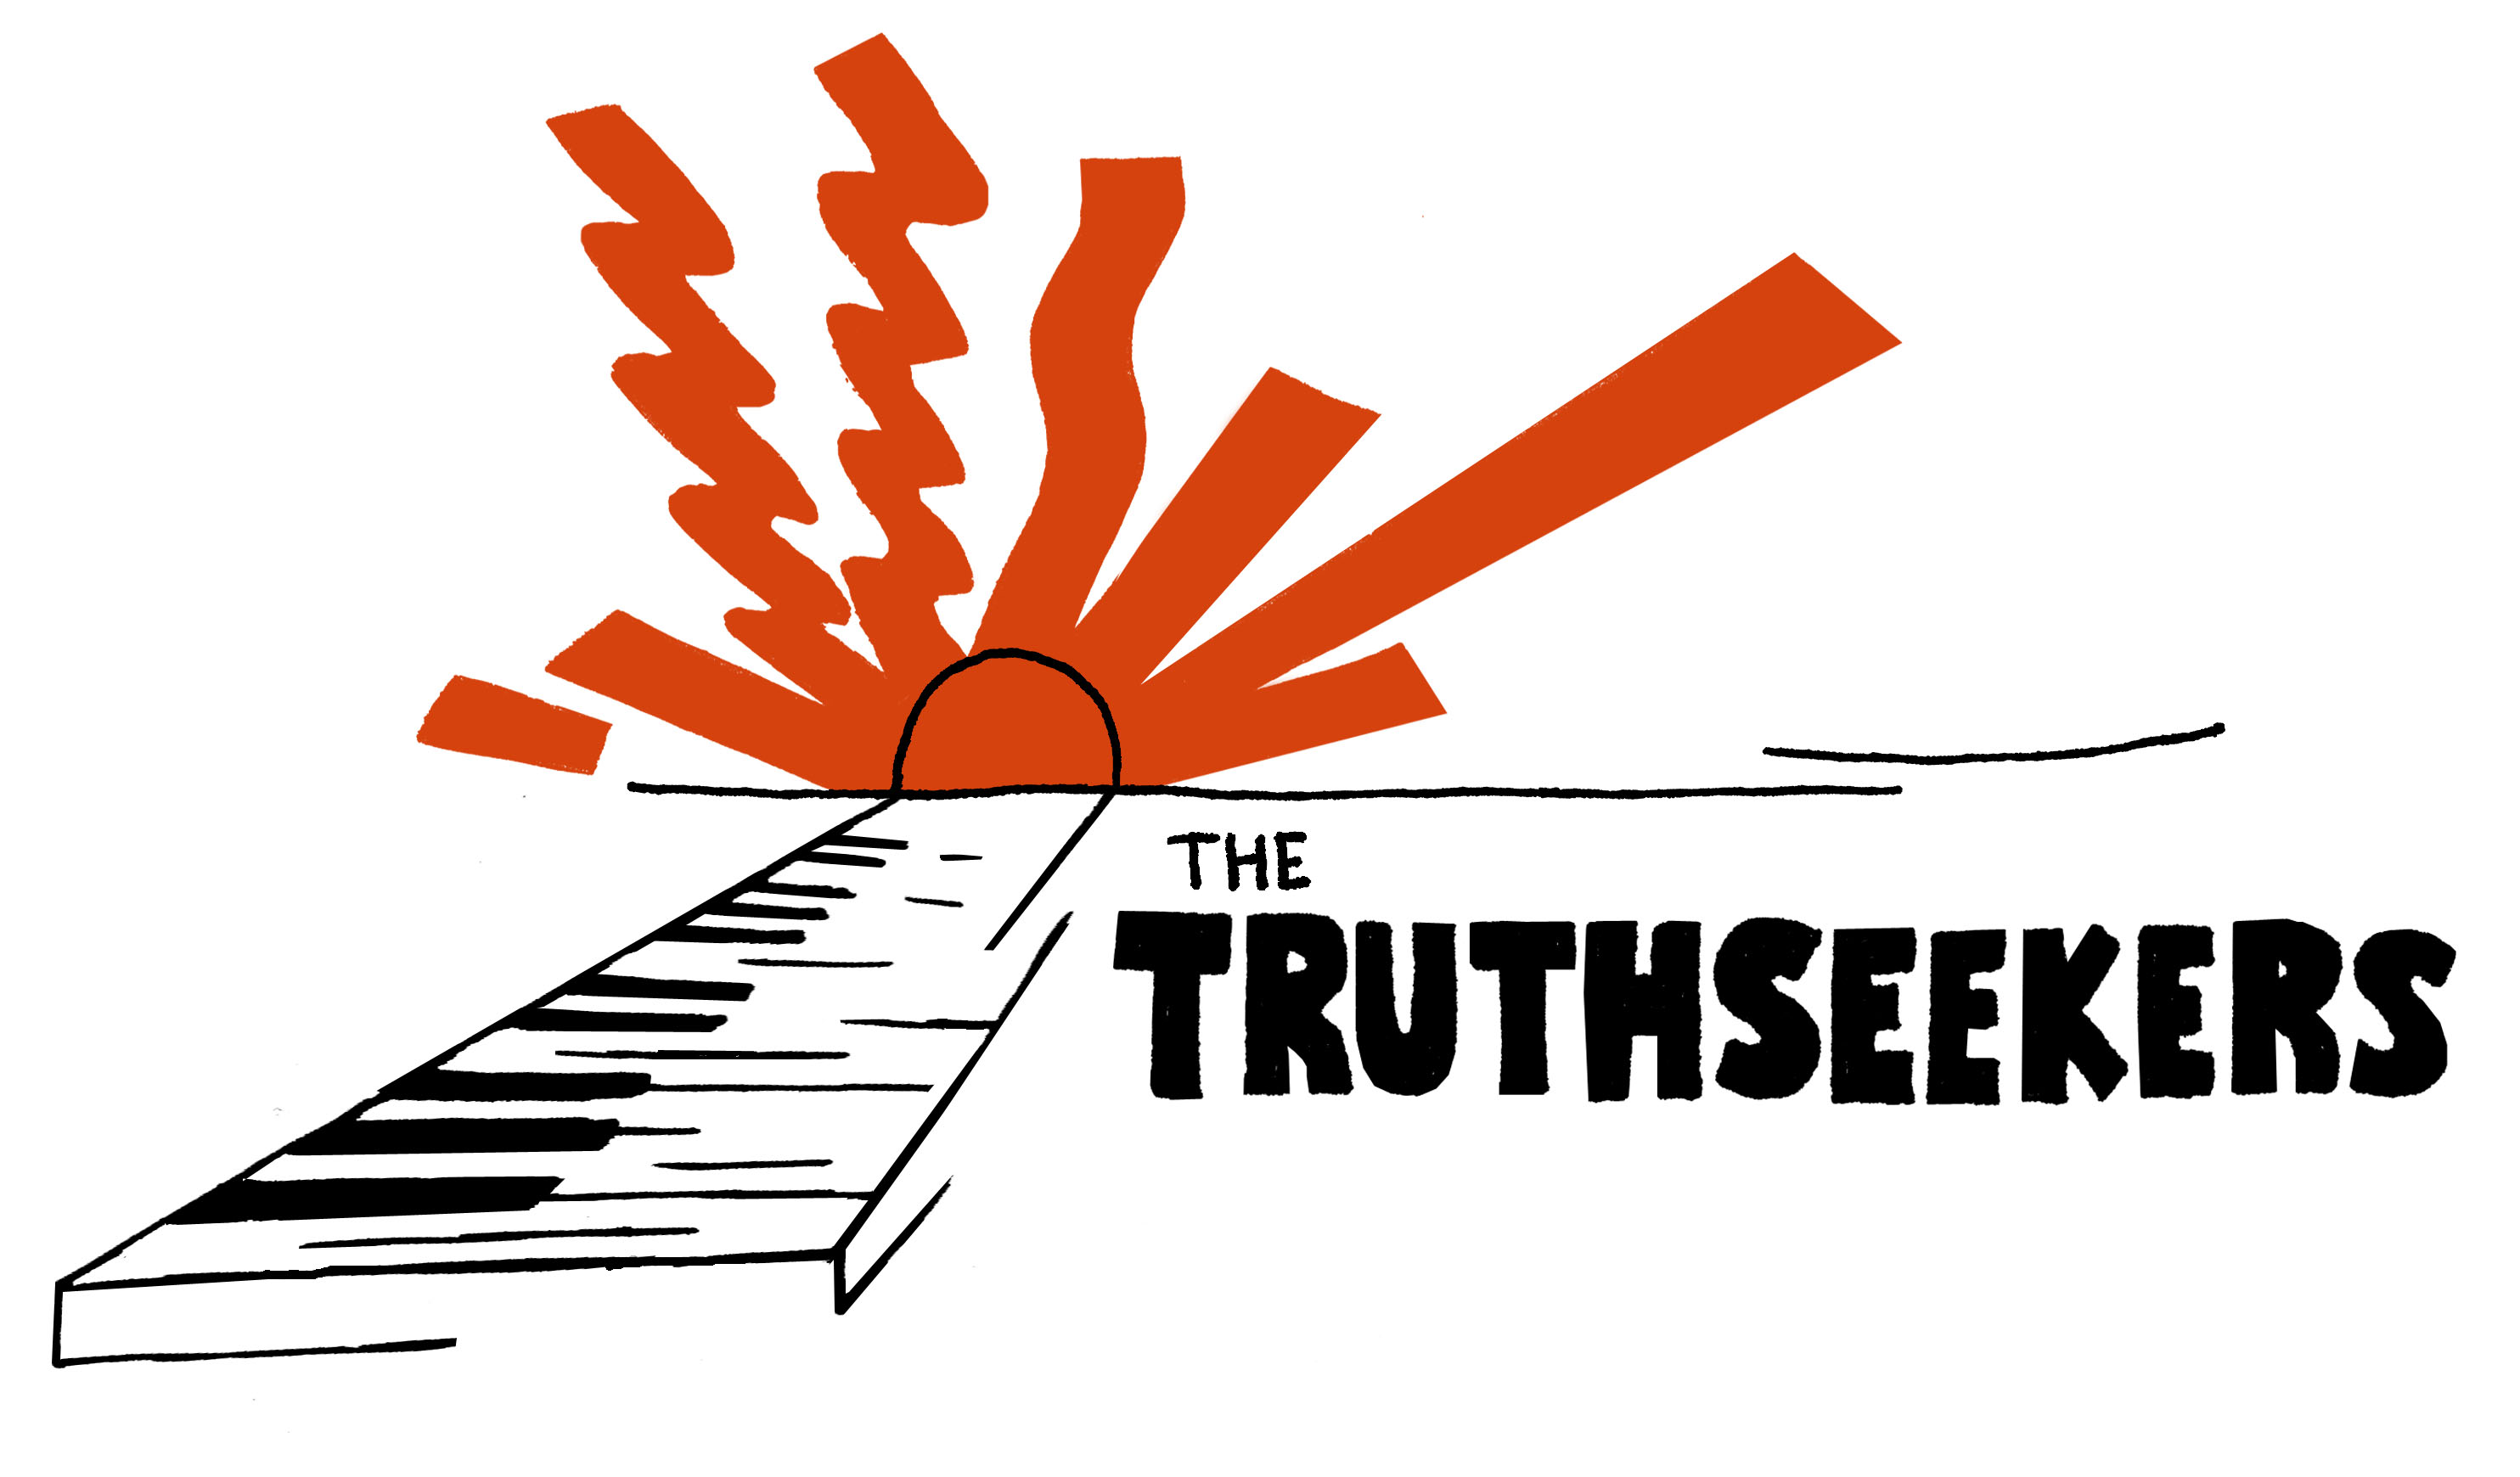 The Truthseekers (band logo)